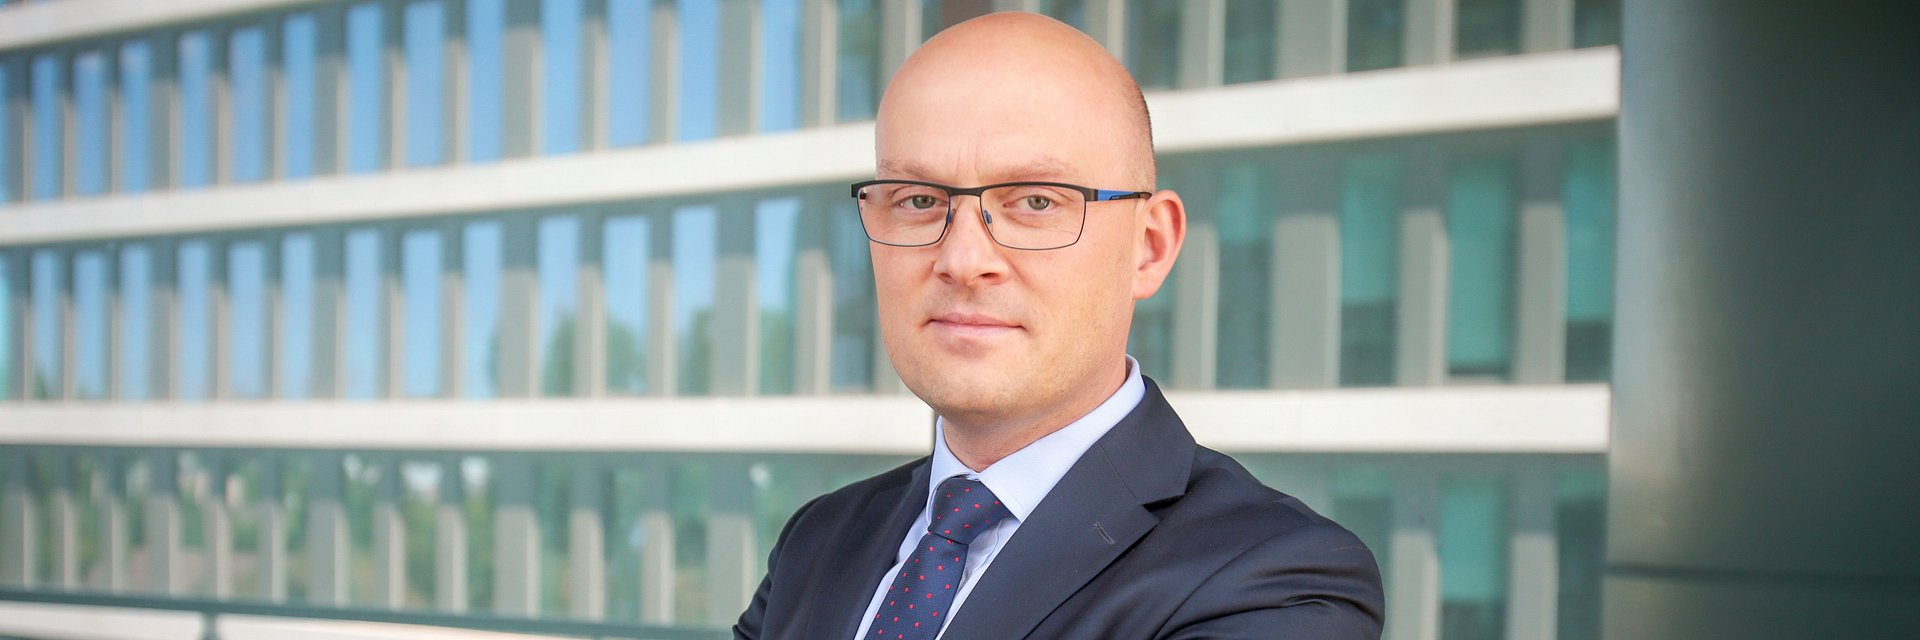 Artur Białkowski has been promoted to the position of the Managing Director at Medicover Poland